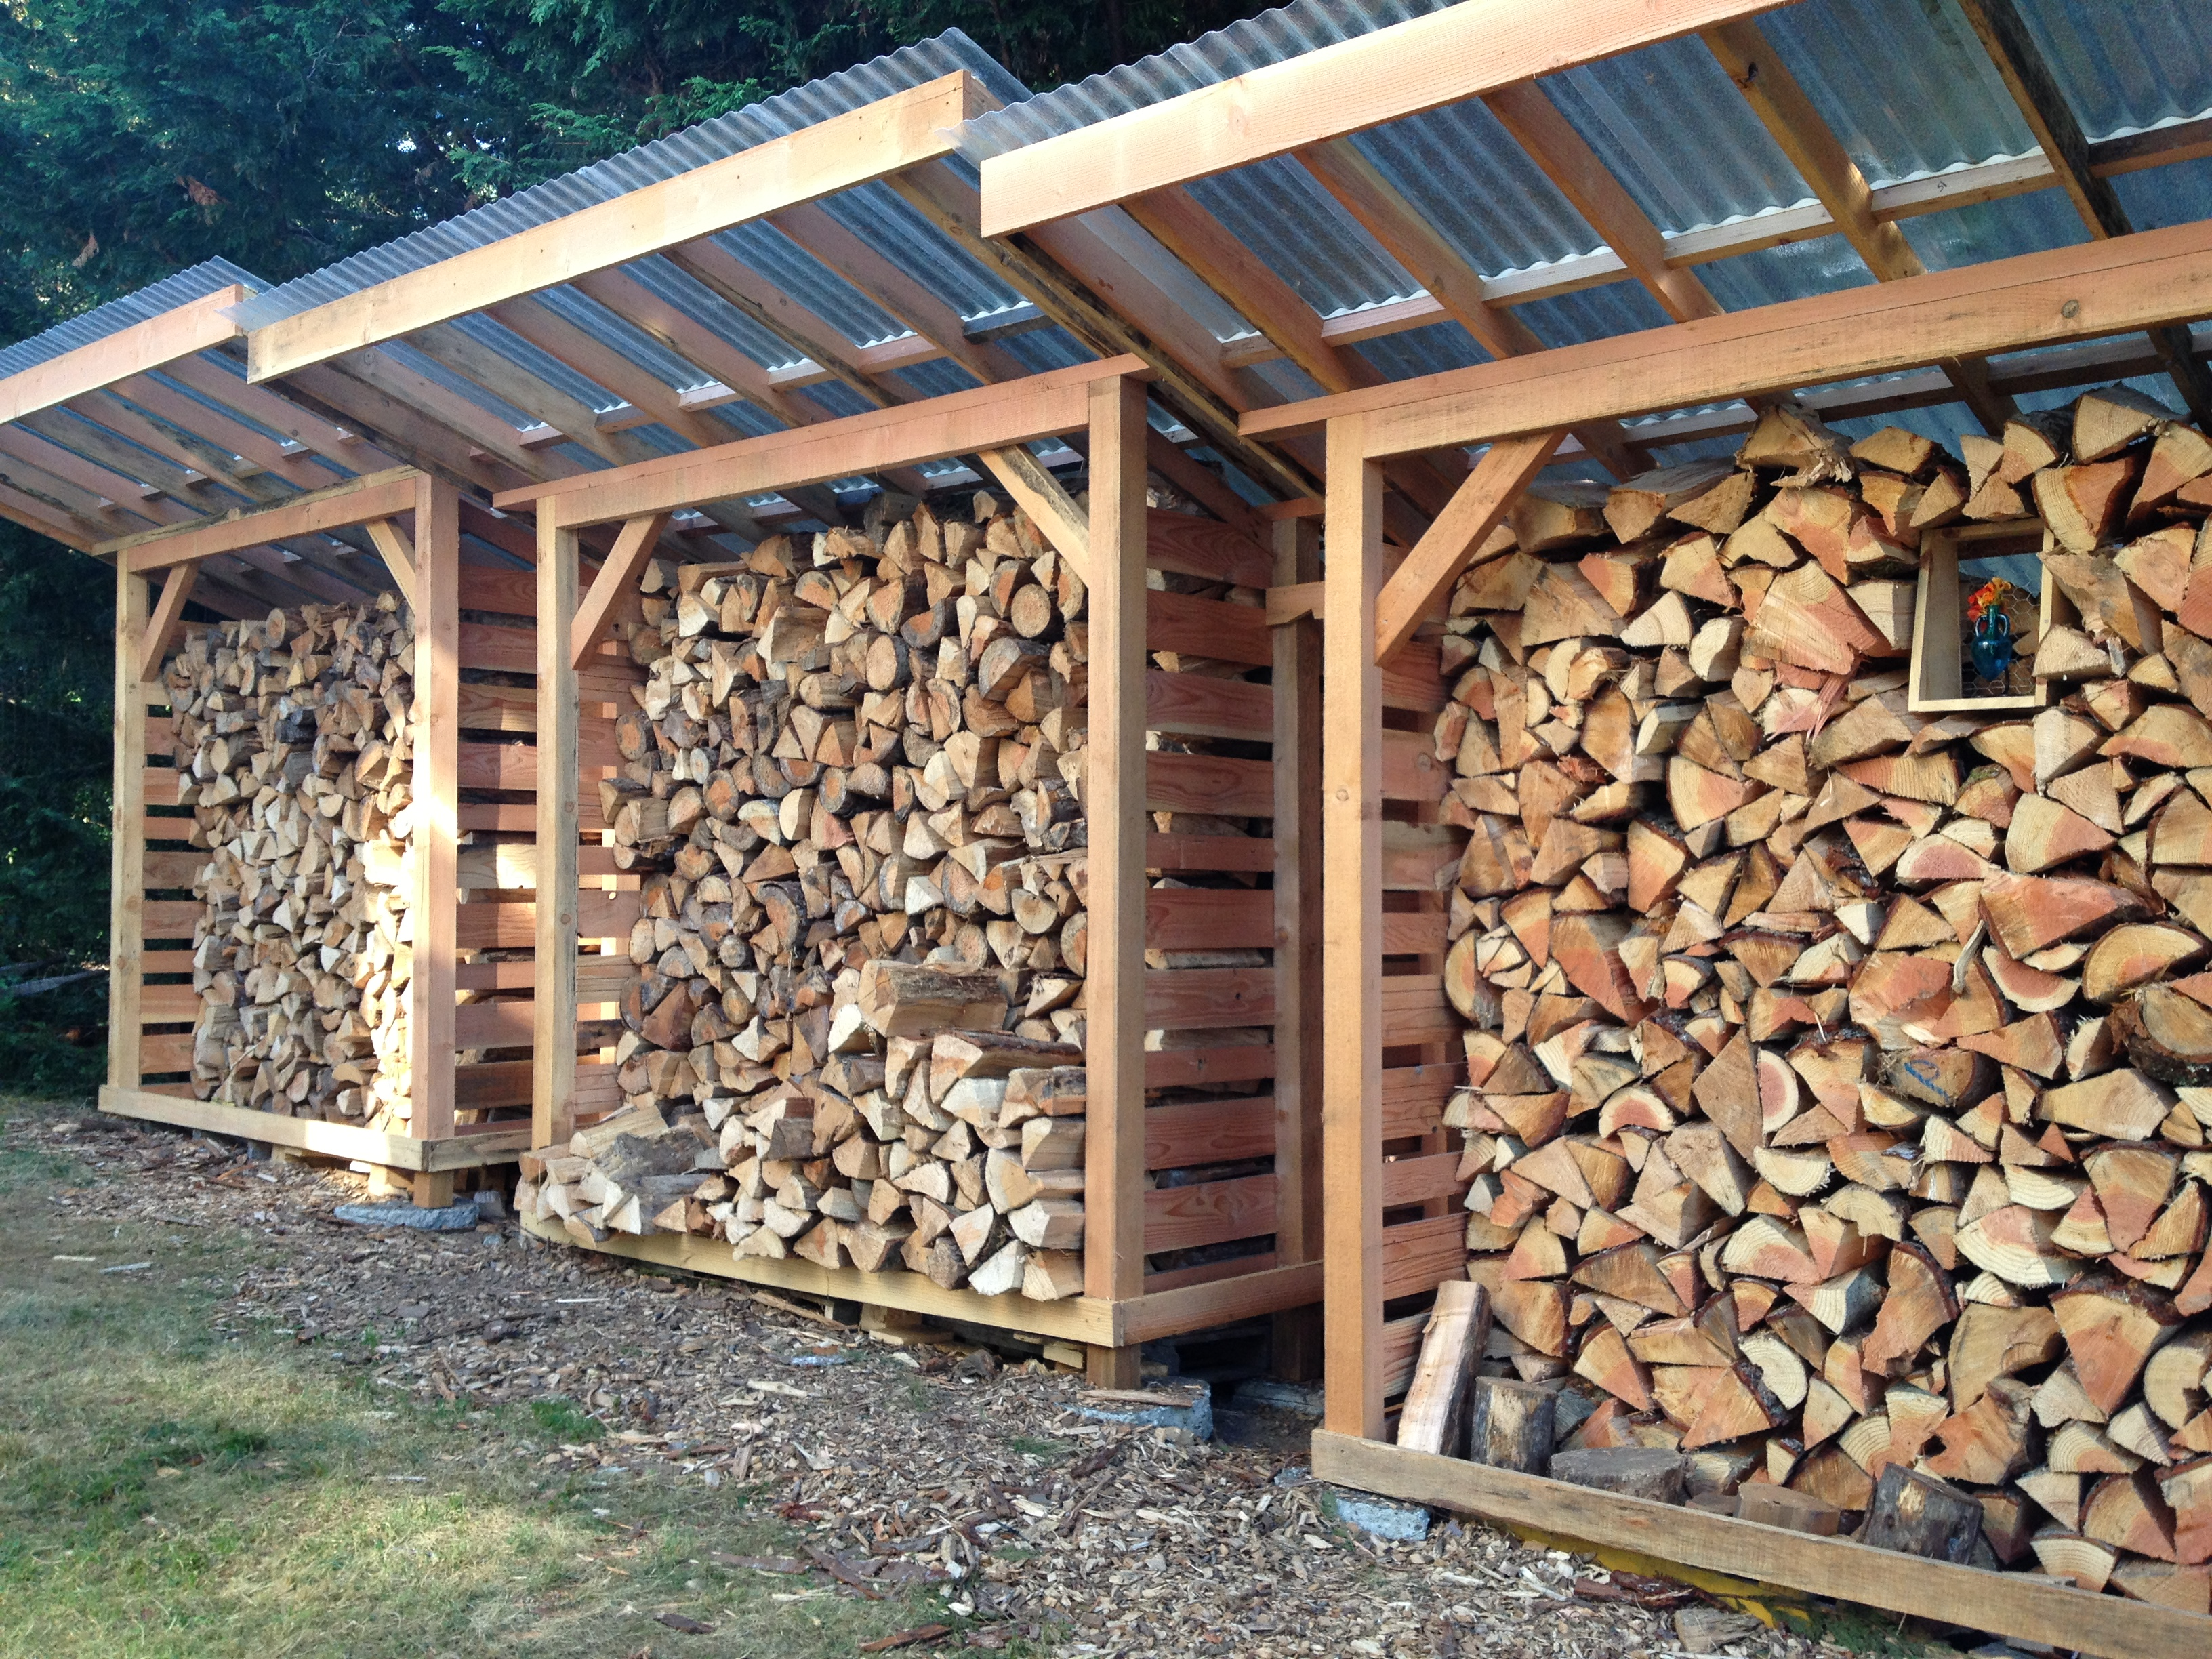 Design Schuur Diy Outdoor Firewood Storage Box Plans Pdf Download Roll